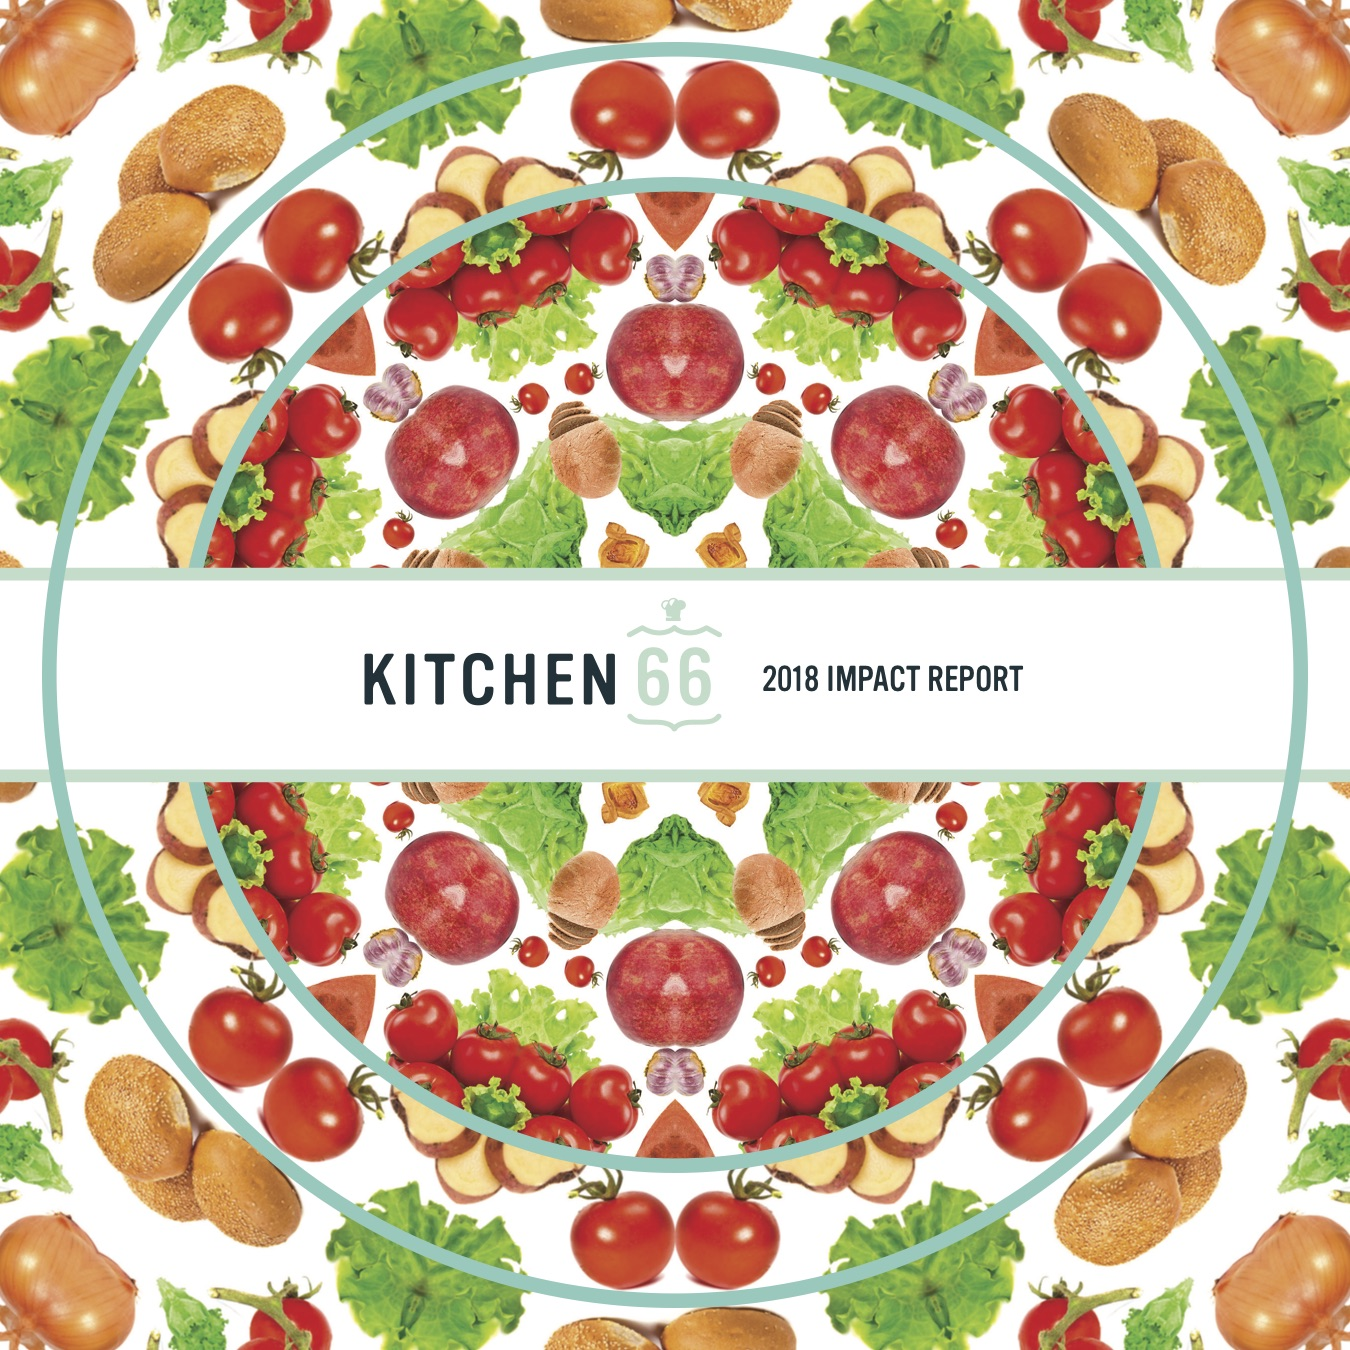 2018 Kitchen 66 Impact Report (1).jpg